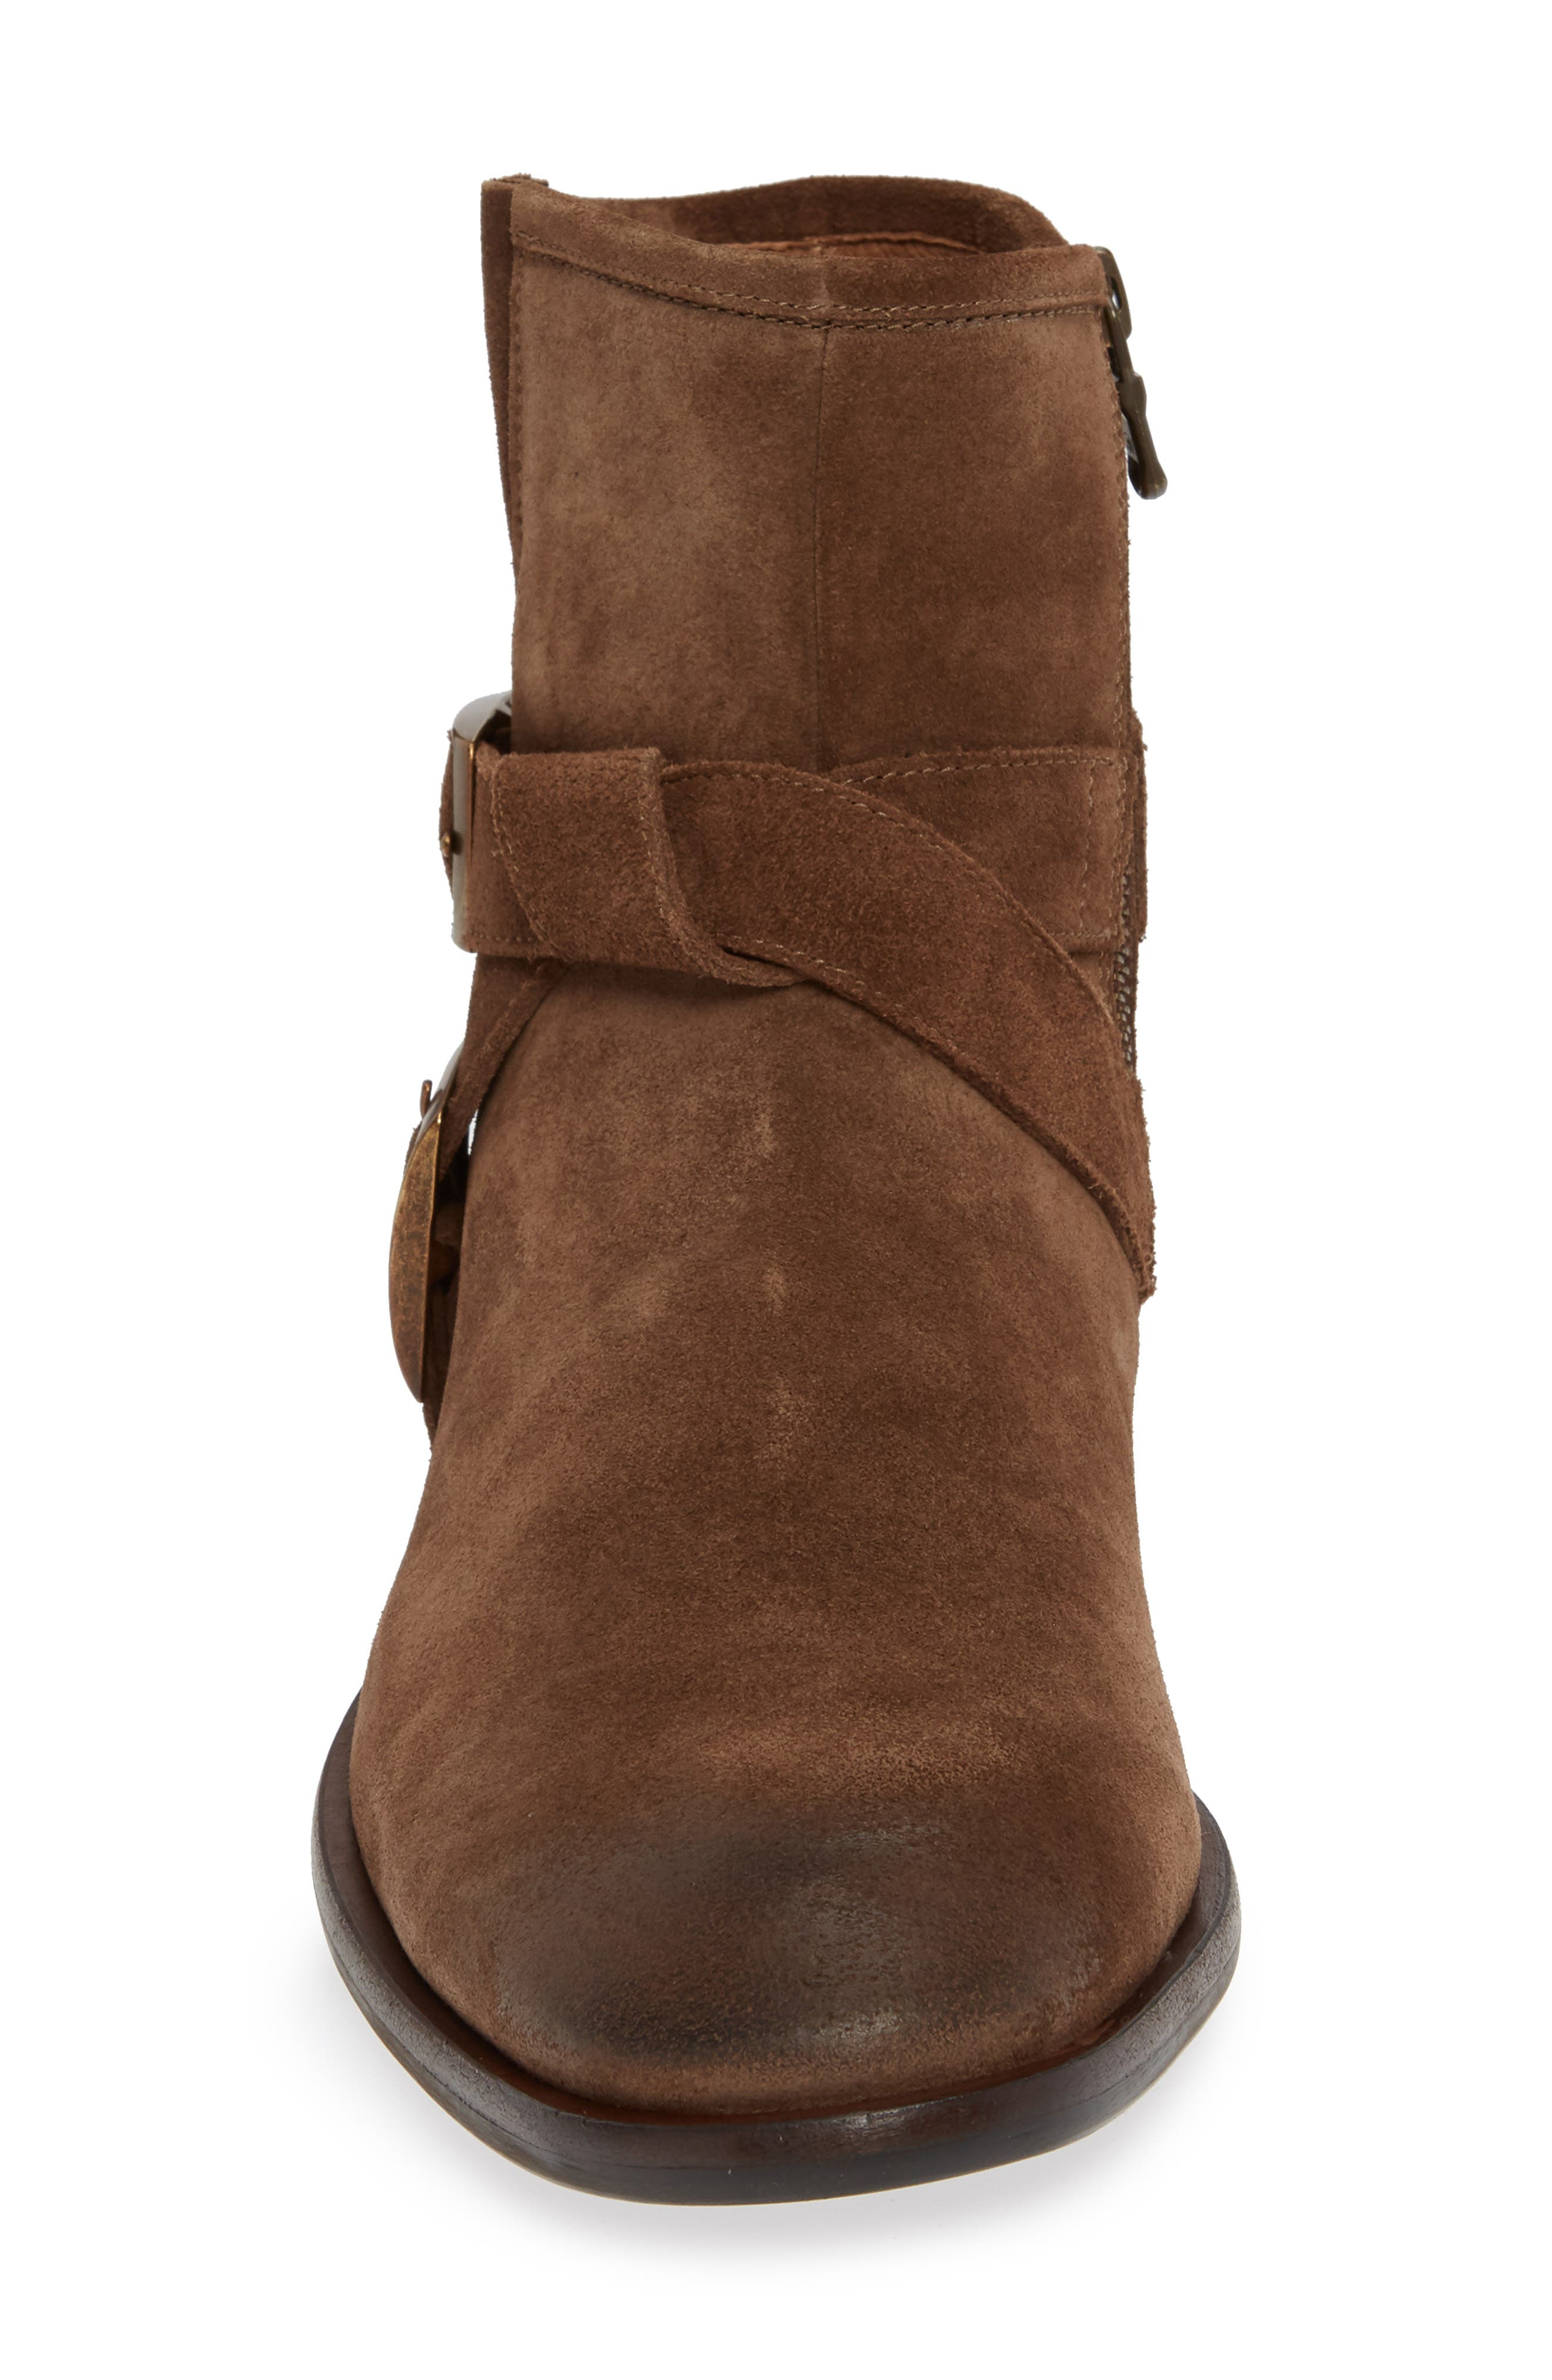 John Varvatos NYC Double Buckle Tall Boot,                             Alternate thumbnail 4, color,                             ANTIQUE BROWN SUEDE